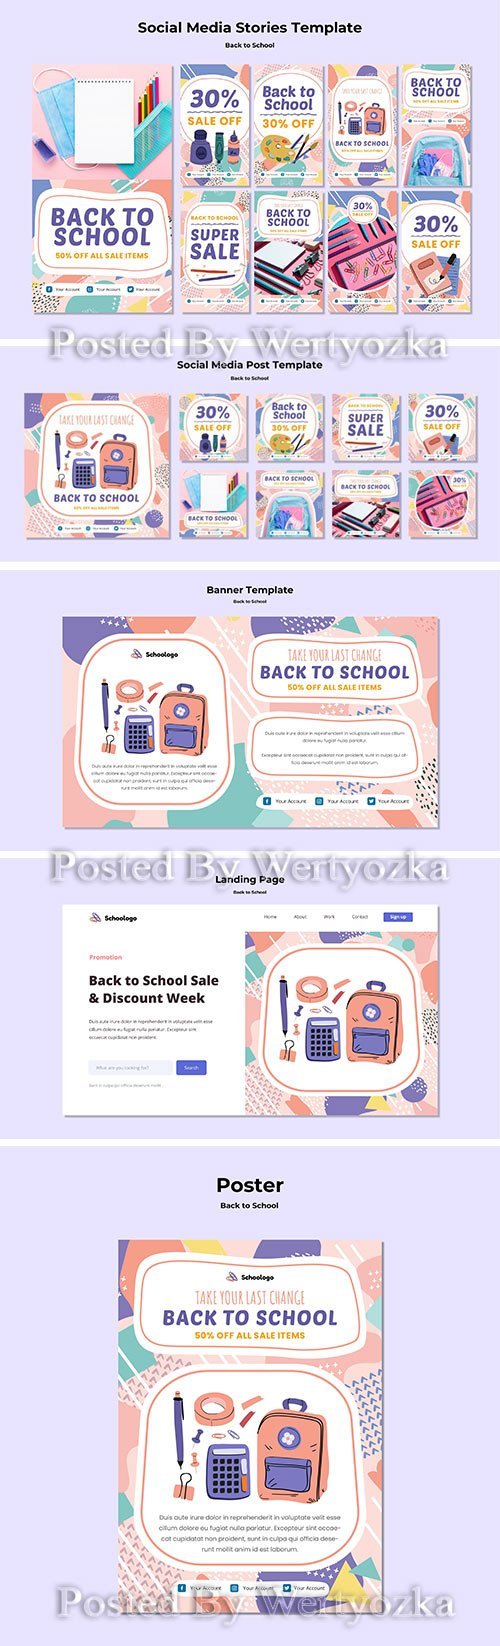 Back to school poster, back to school social media post